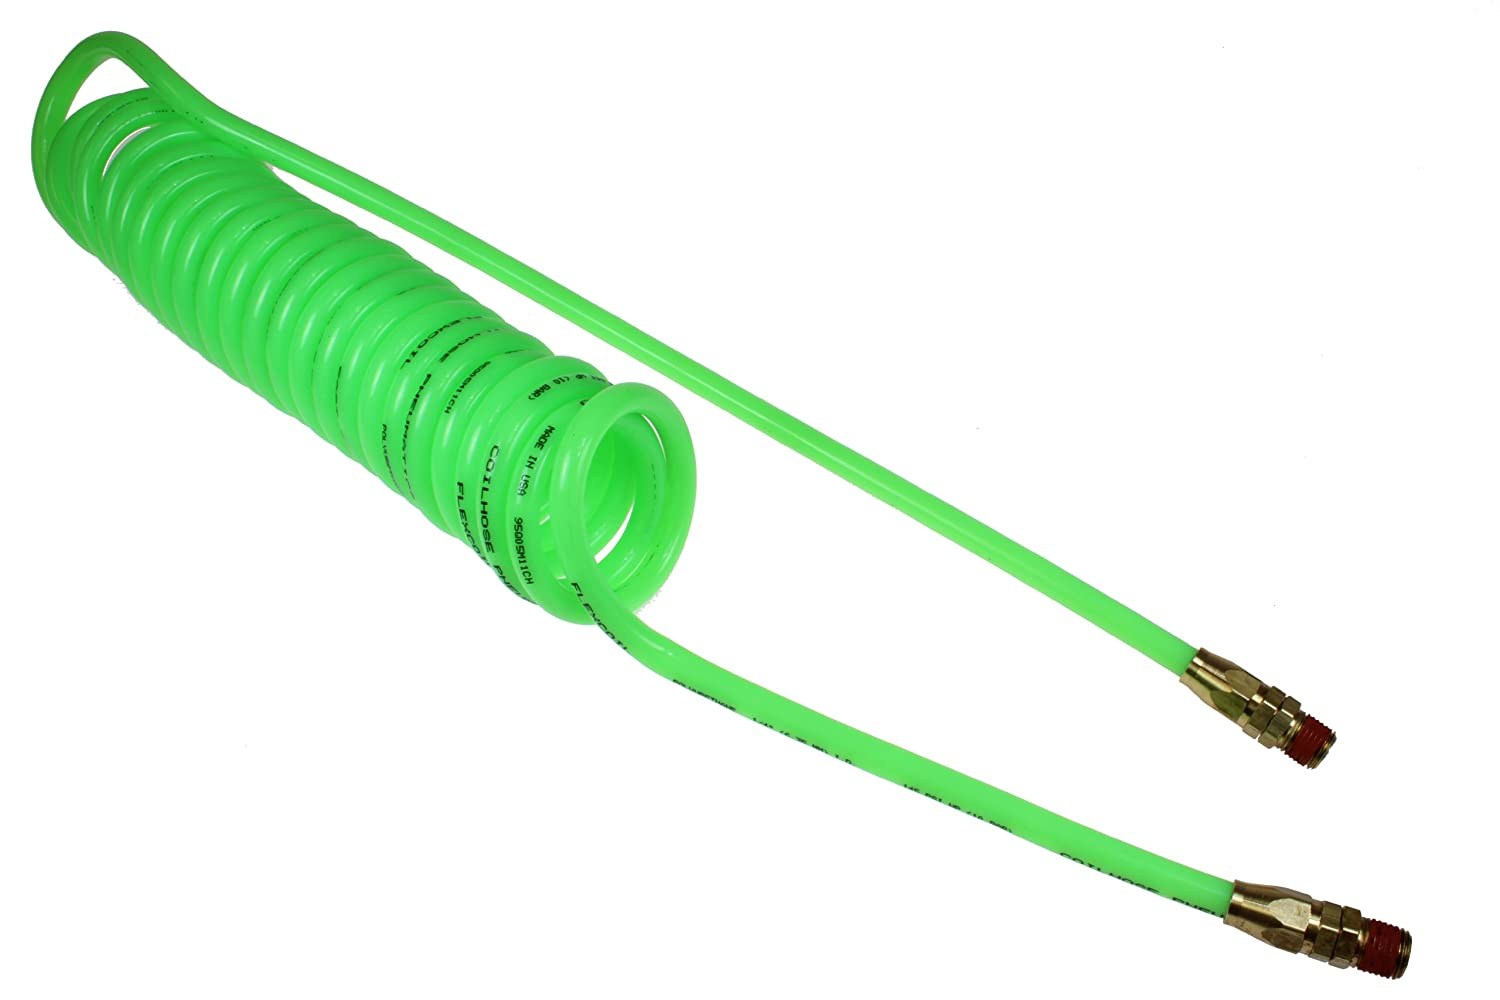 Coilhose Pneumatics PU14-10B-G Flexcoil Polyurethane Coiled Air Hose Neon Green 1//4-Inch Reusable Strain Relief MPT Swivel Fittings 10-Foot Length with 1//4-Inch ID 2